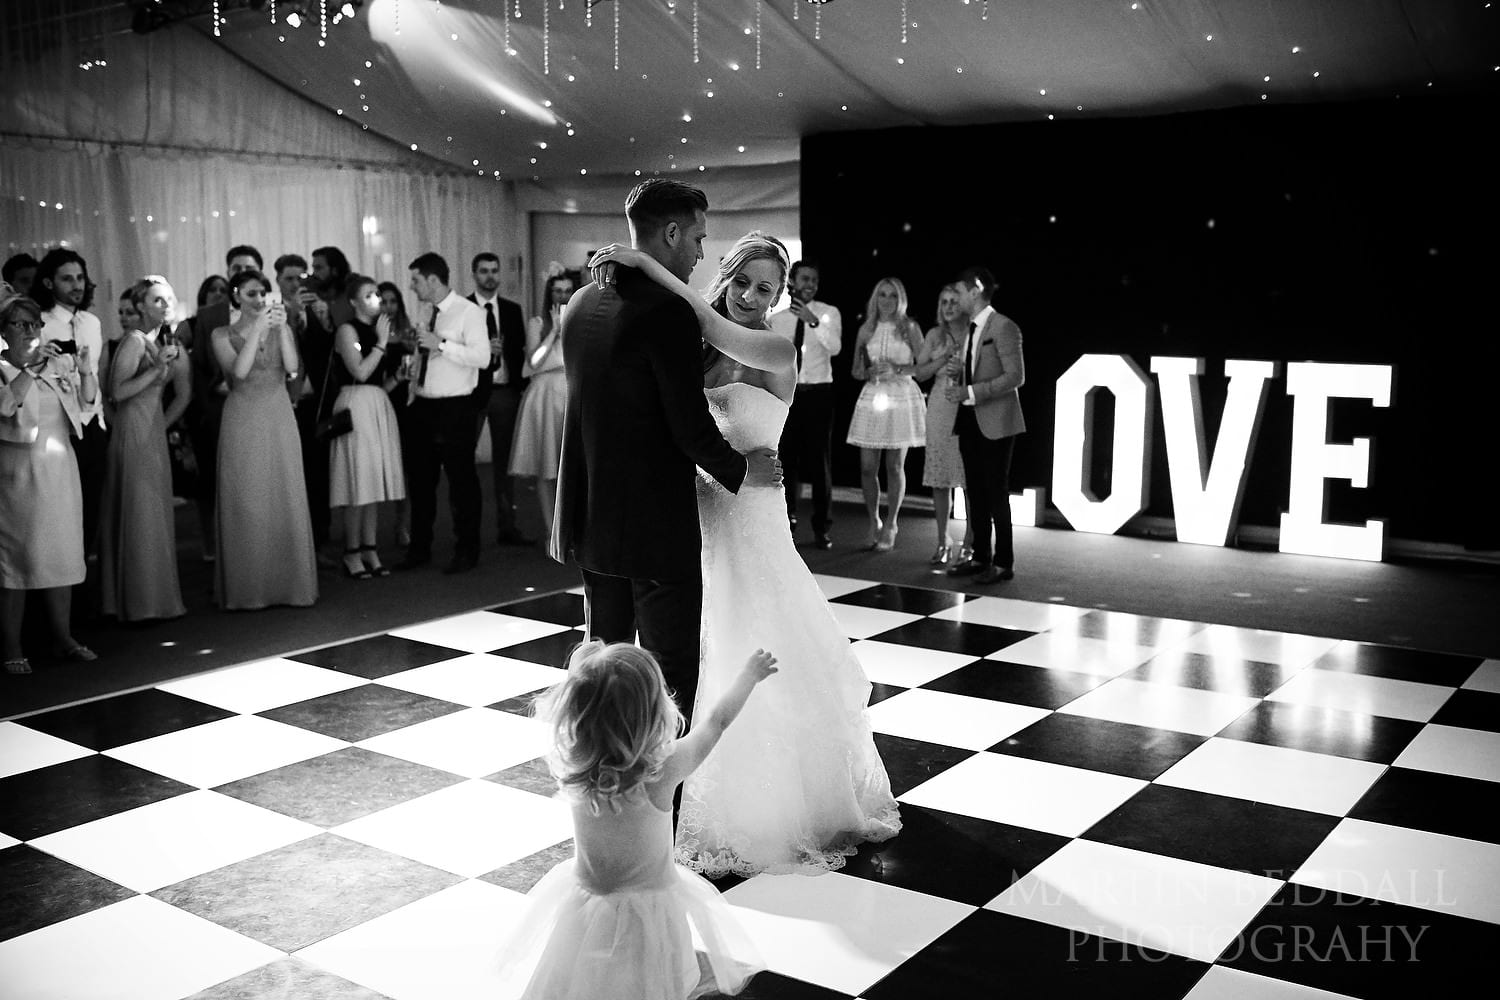 Their young daughter wants to join in the first dance